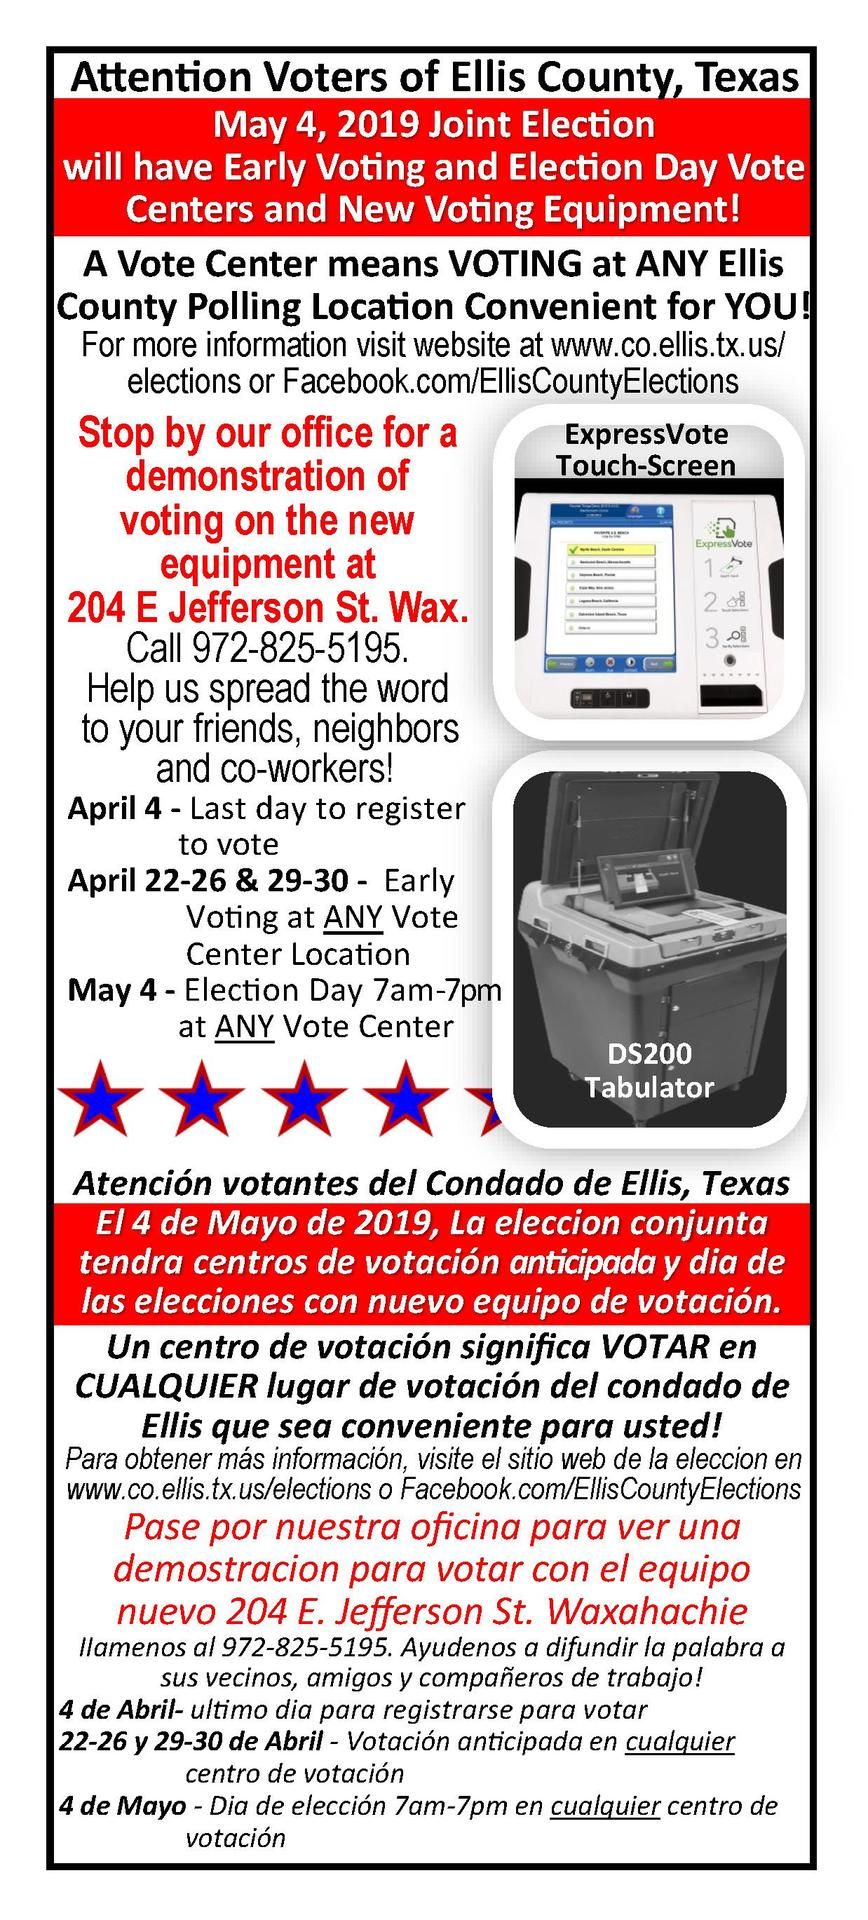 Voting centers and new equipment